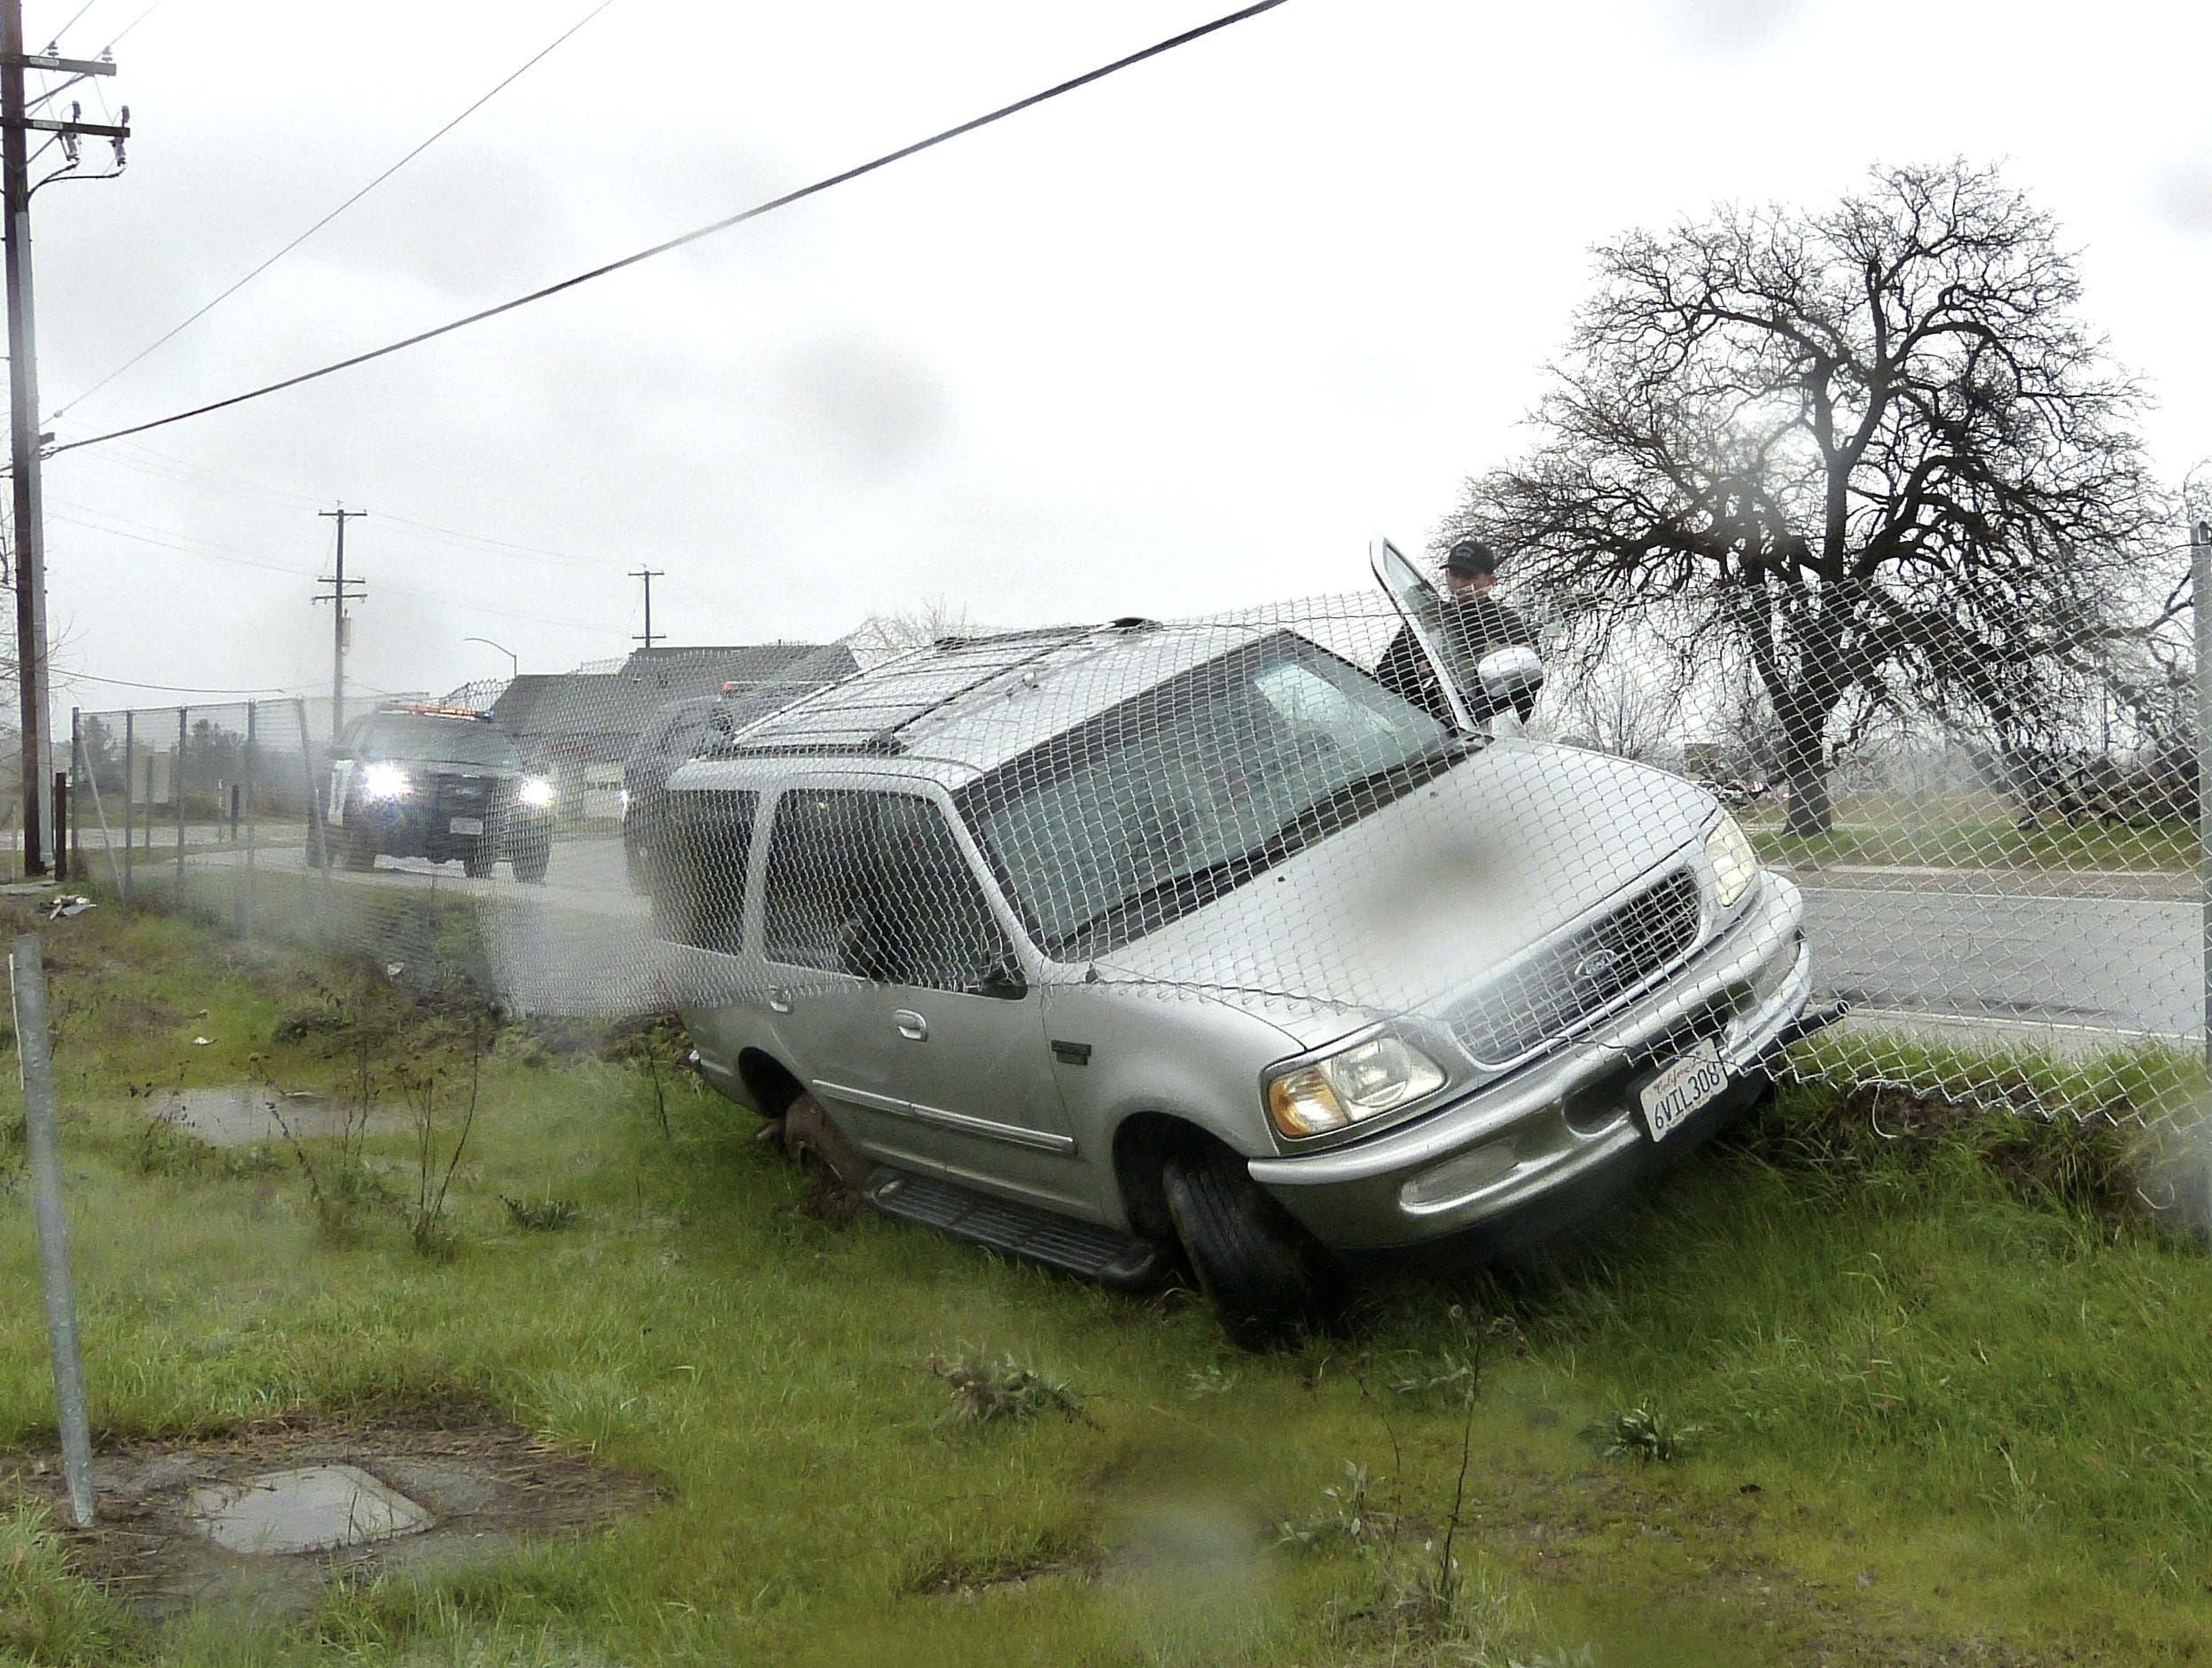 Redding police investigate after a car went off Hilltop Drive during the rain on Tuesday.